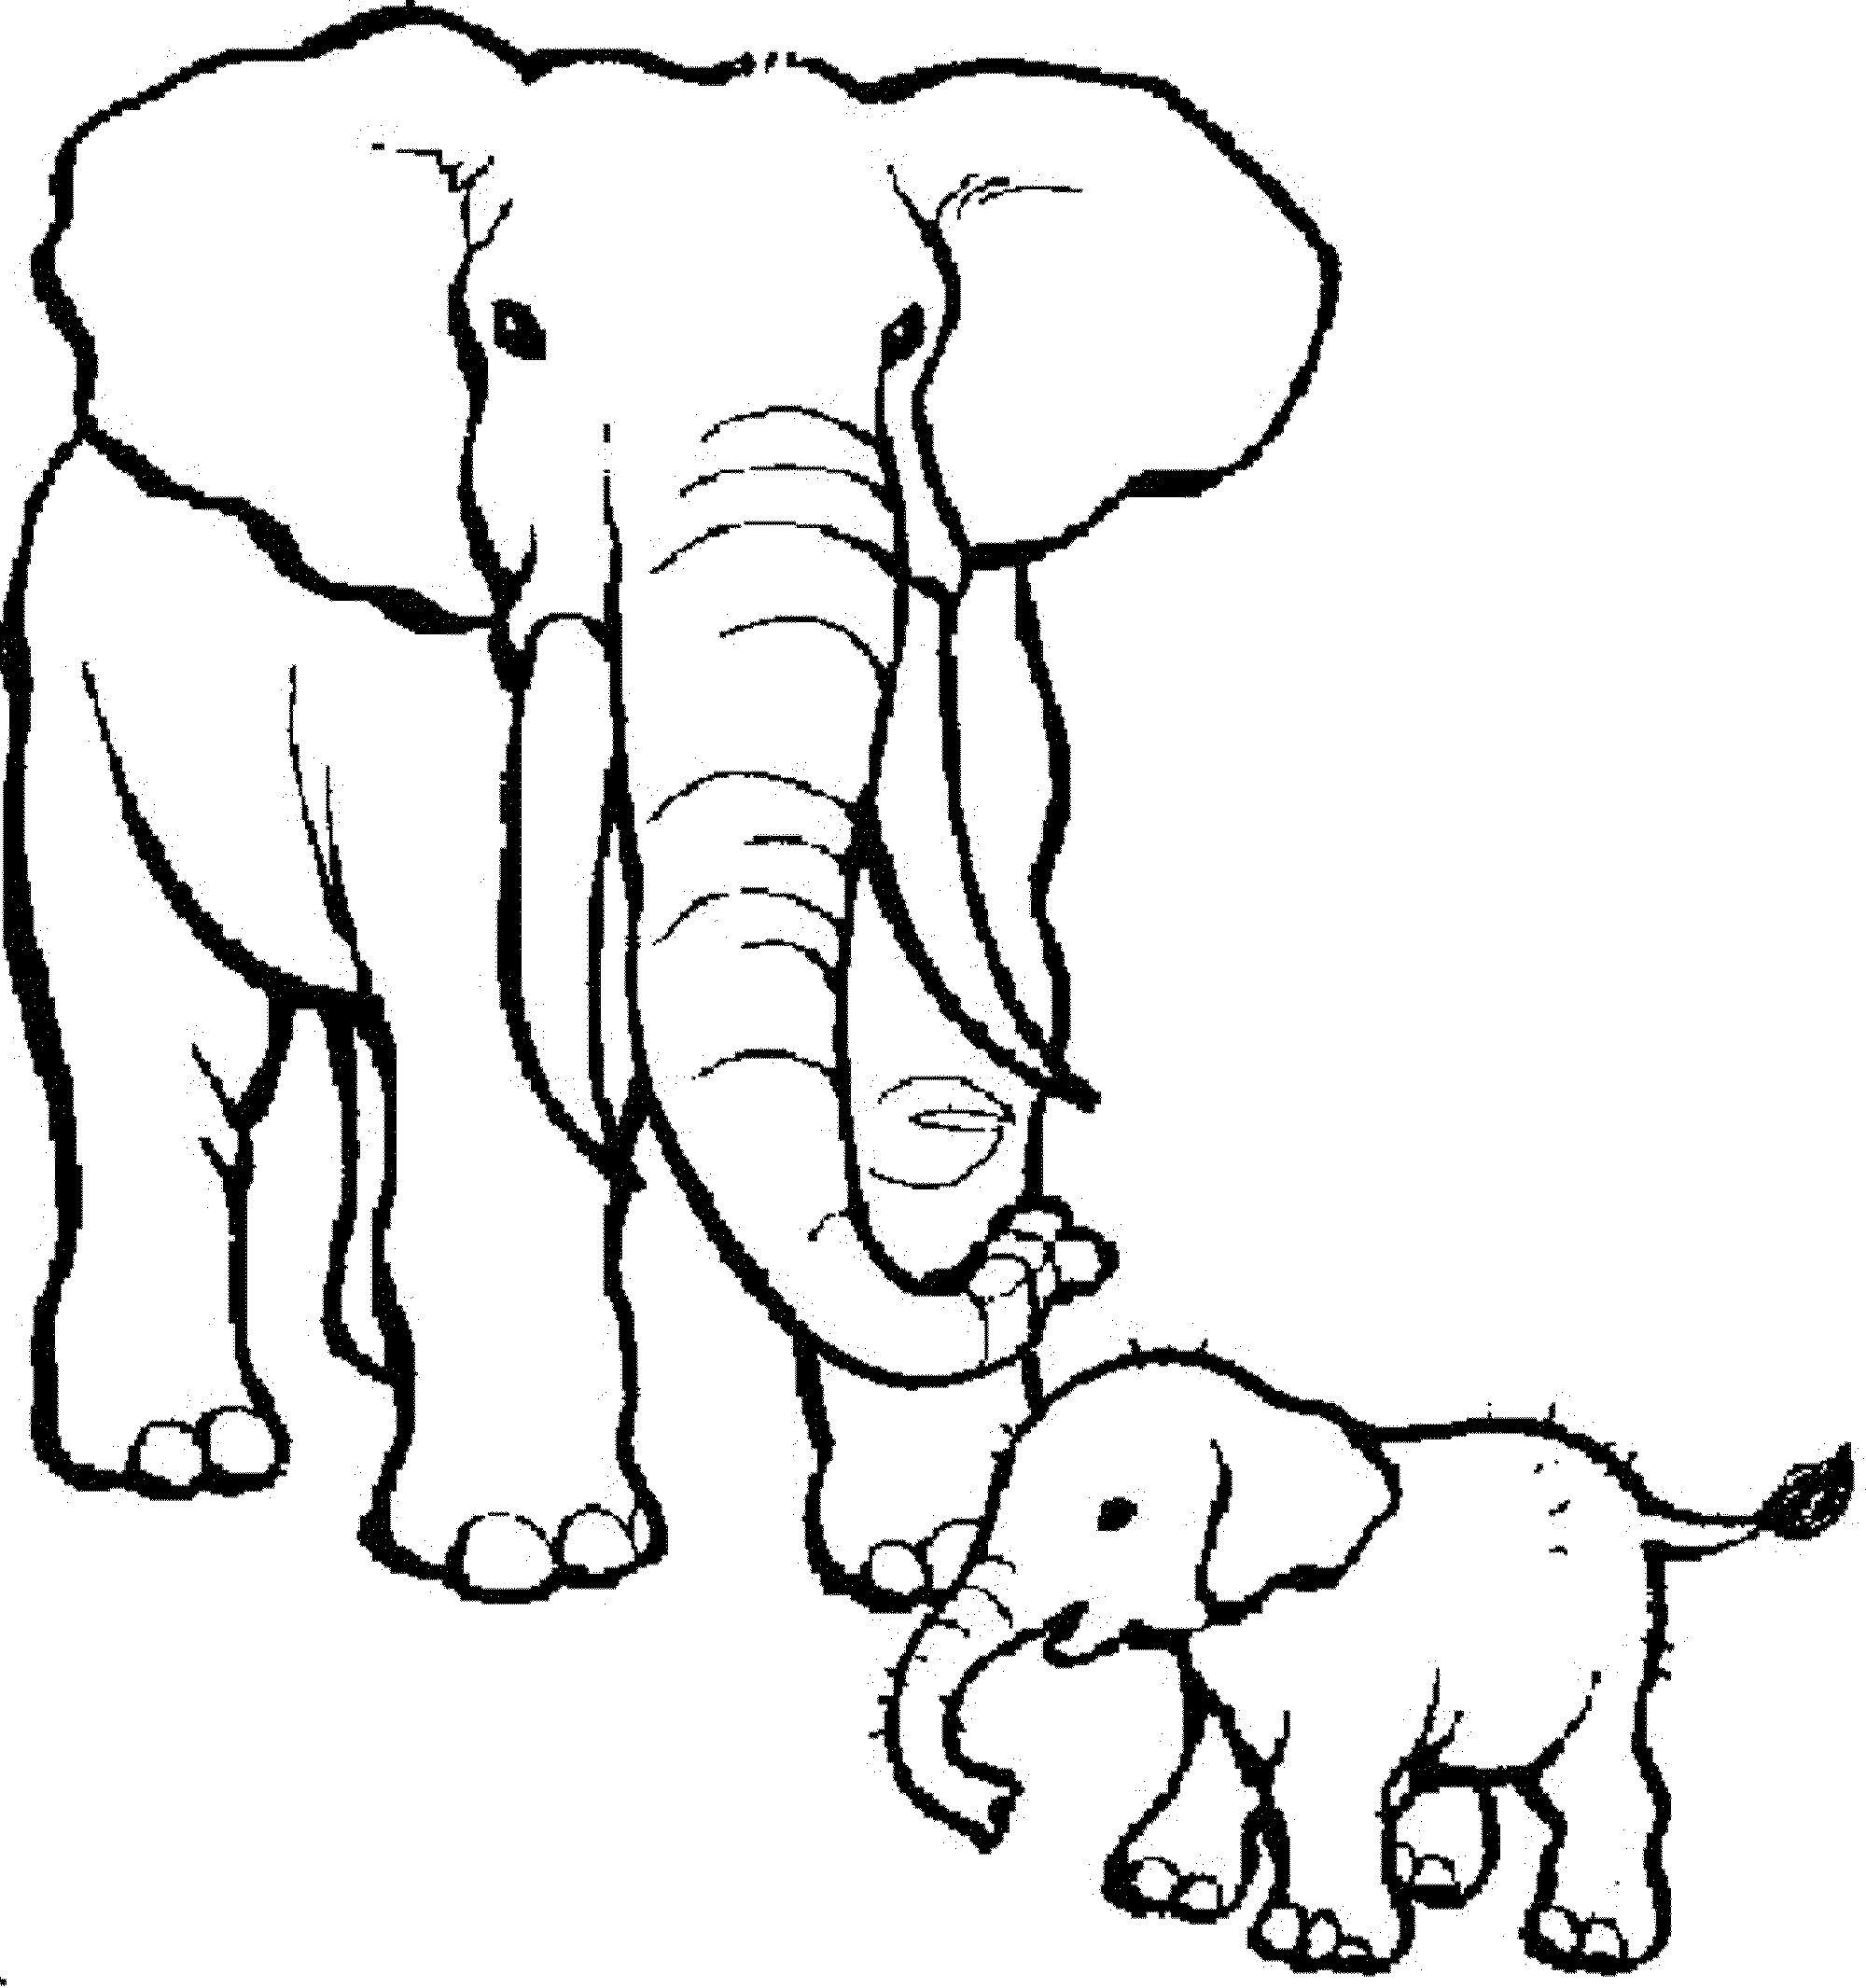 coloring pages of elephants - Free Elephant Coloring Pages